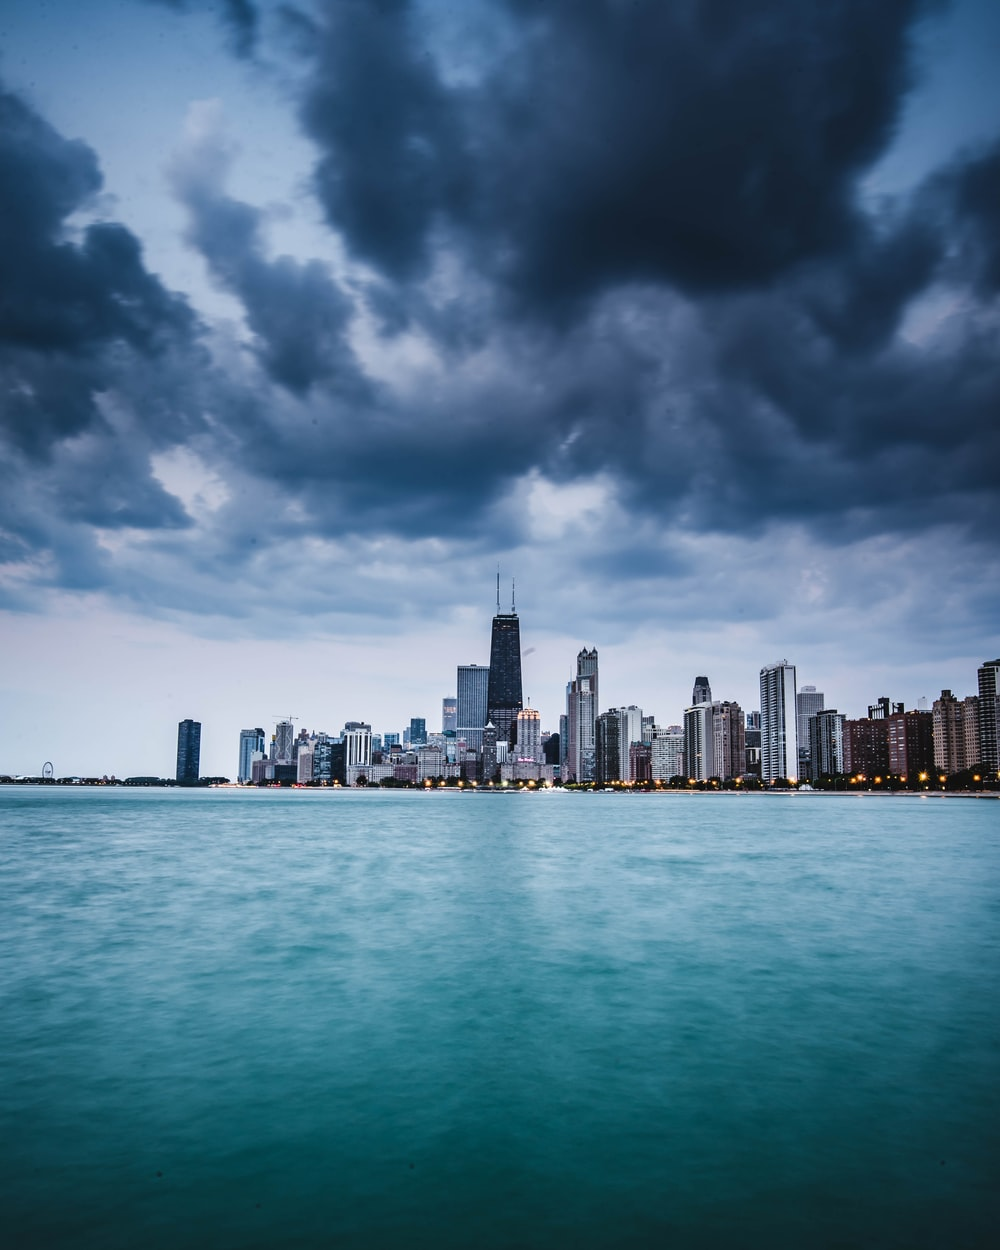 gray and black high-rise buildings beside body of water under gray and white sky at daytime